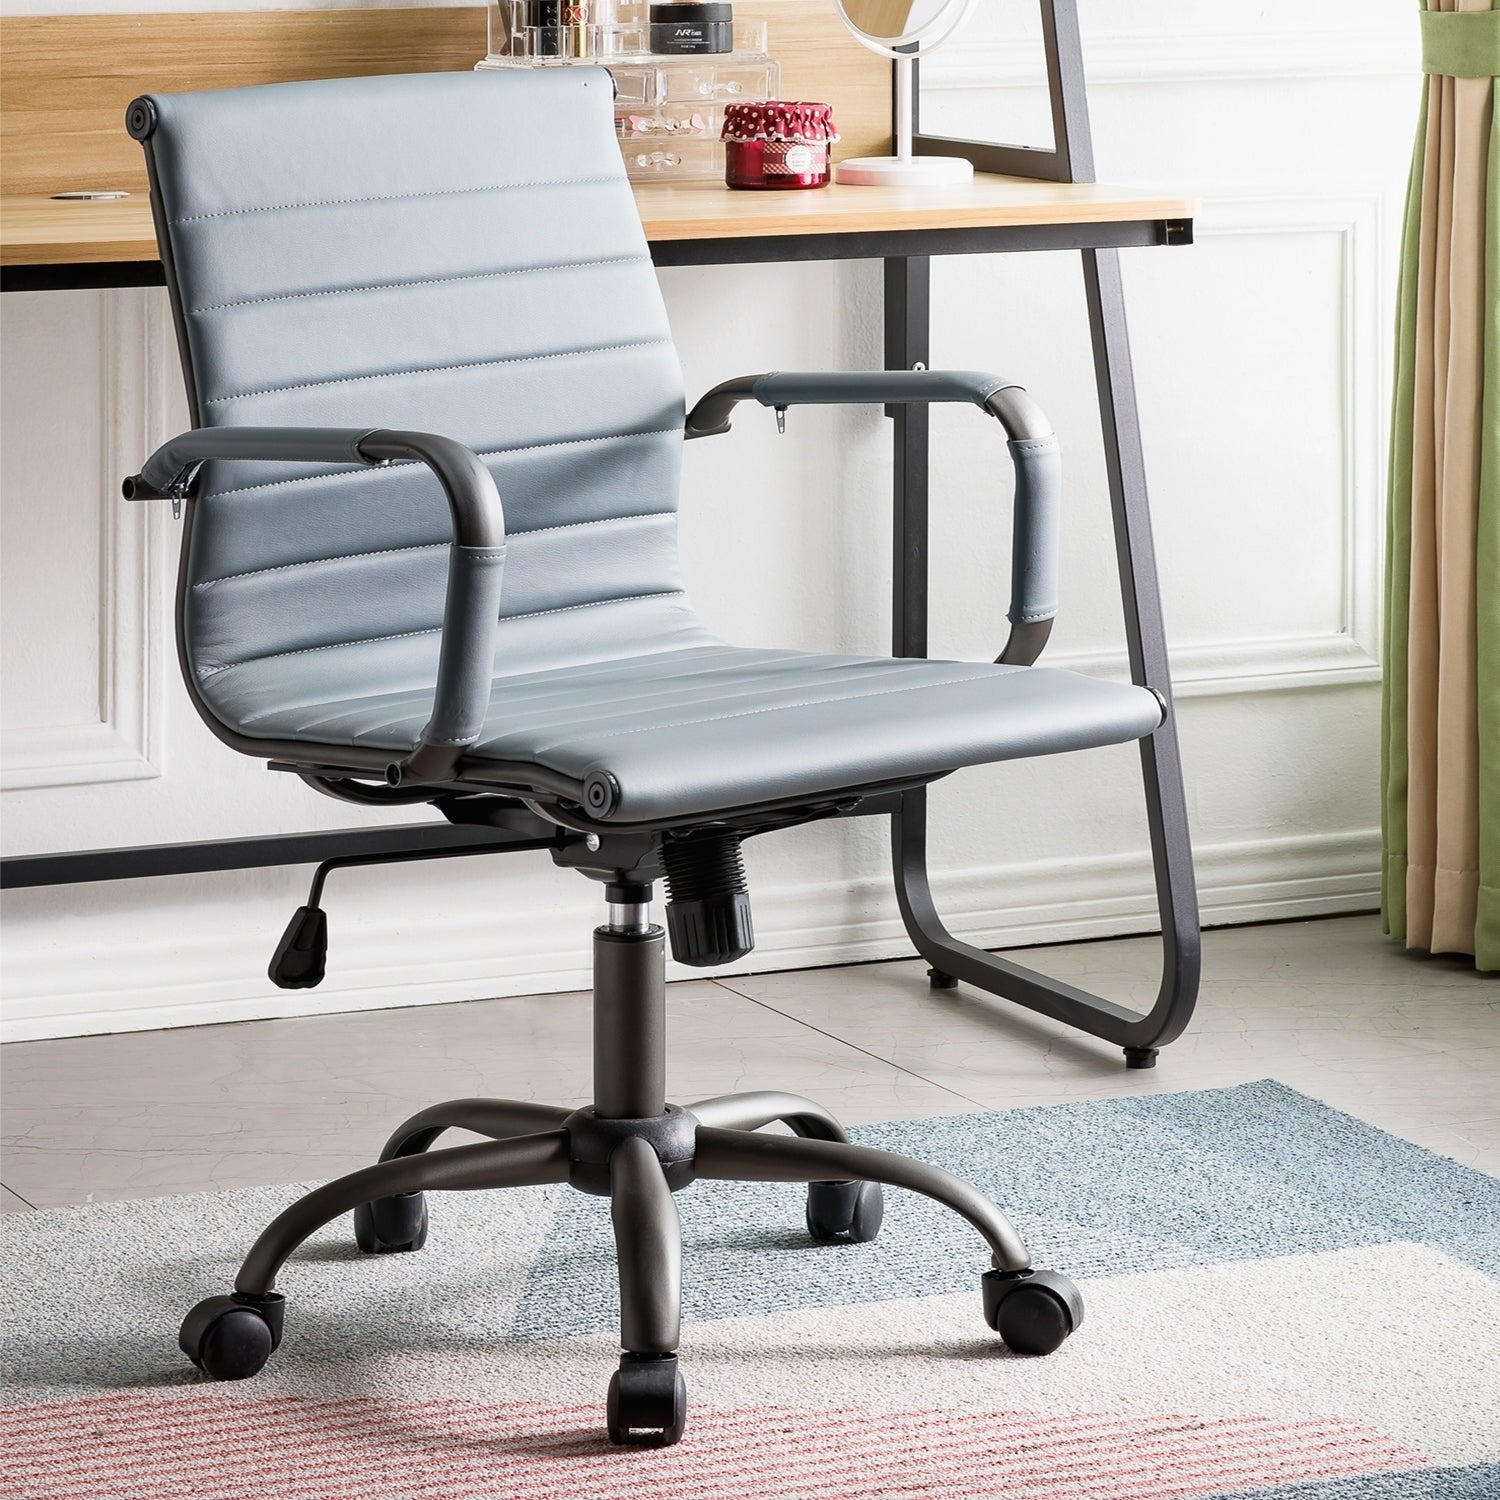 Ovios Ergonomic Office Chair Leather Computer Chair For Home Office Or Conference Mid Back Swivel Desk Chair With Arms